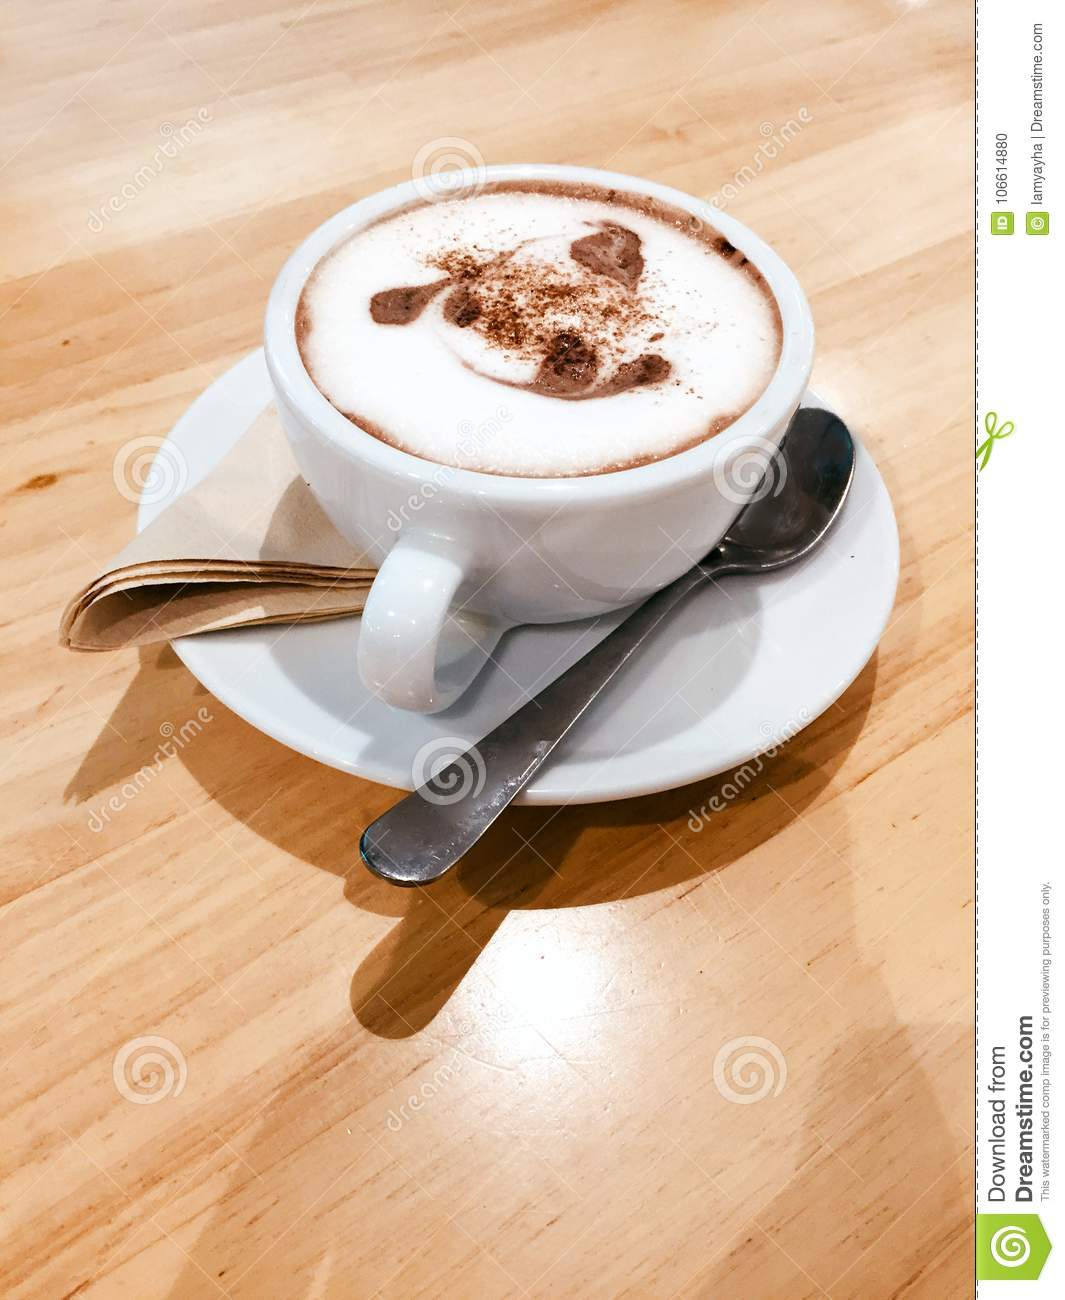 Cocoa Drink In White Cup Isolated Cup With Hot Chocolate On